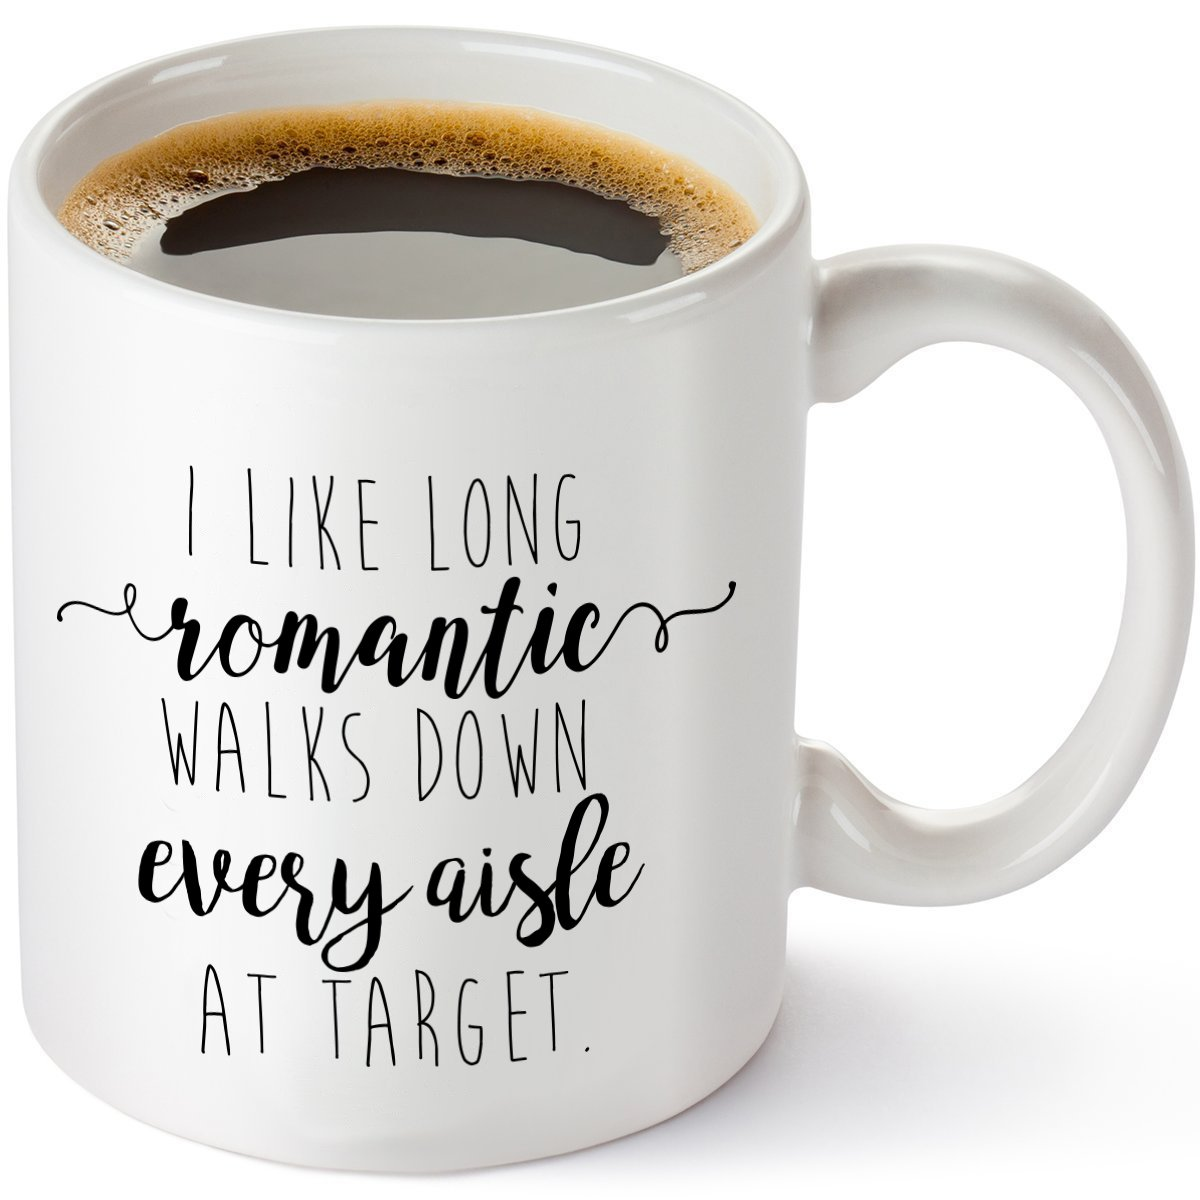 I Like Long Romantic Walks at Target Funny Coffee Mug 11oz - Unique Christmas Gift Idea for Her, Mom, Wife, Girlfriend, Sister, Grandmother, Aunt - Birthday Gifts for Women - Mother Day Gifts